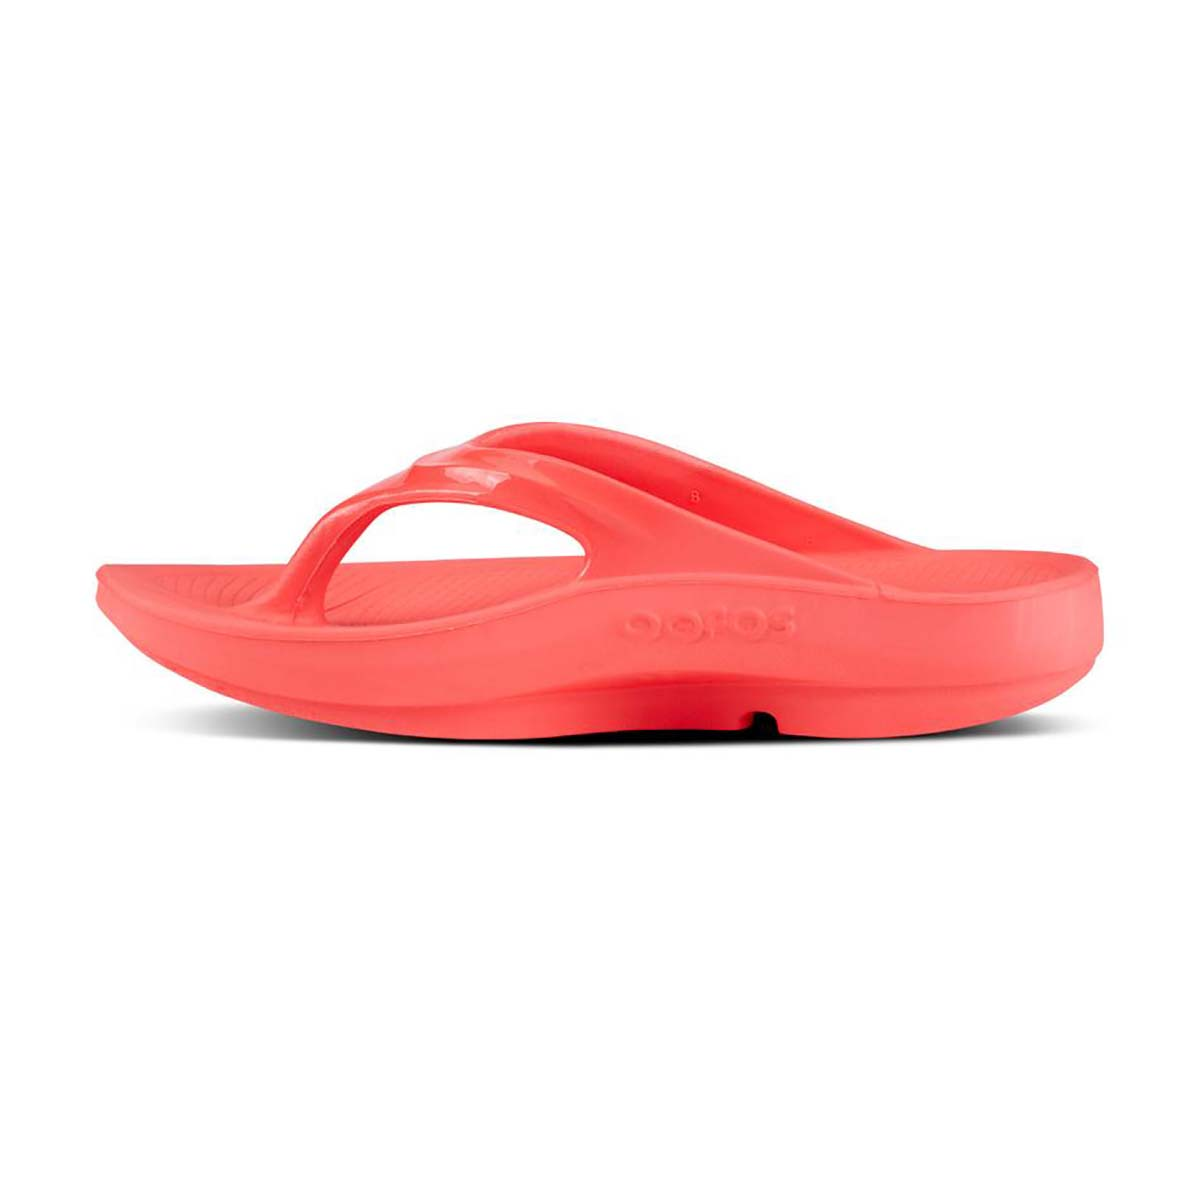 Women's Oofos OOlala Thong Recovery Sandal - Color: Coral - Size: 6 - Width: Regular, Coral, large, image 4